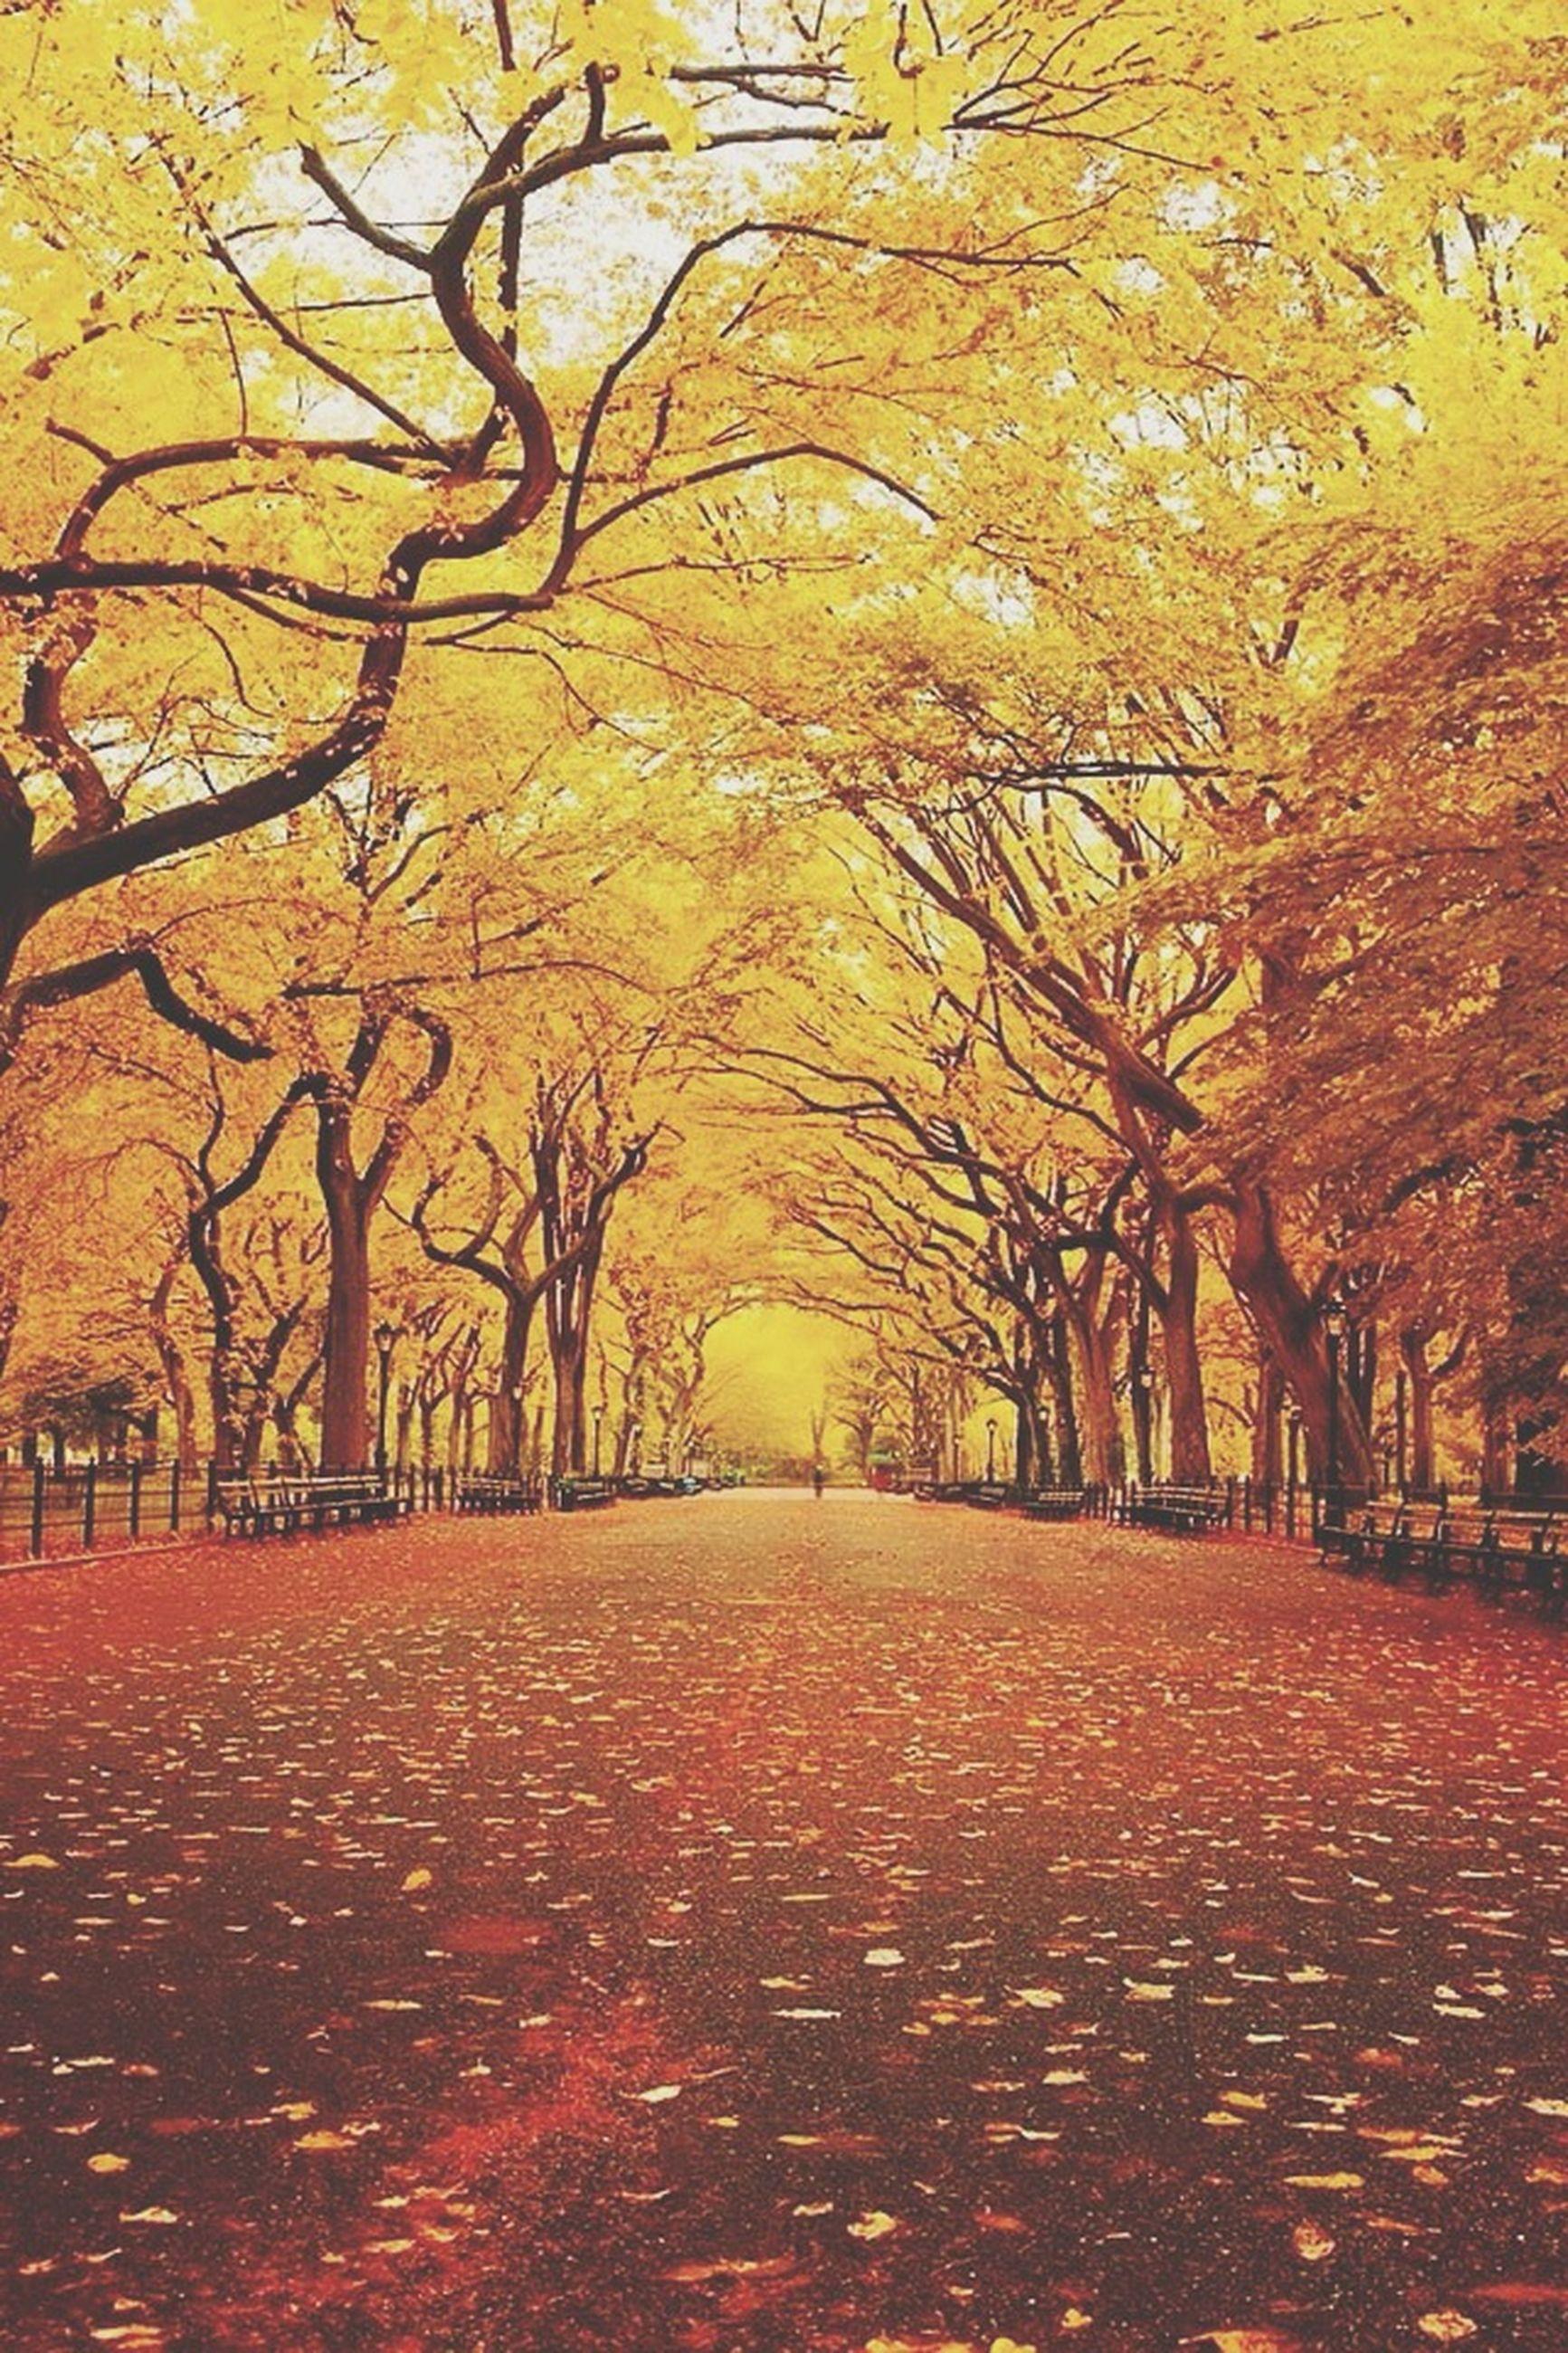 tree, autumn, change, orange color, season, tranquility, nature, branch, yellow, tranquil scene, beauty in nature, scenics, sunset, bare tree, the way forward, road, leaf, outdoors, growth, sunlight